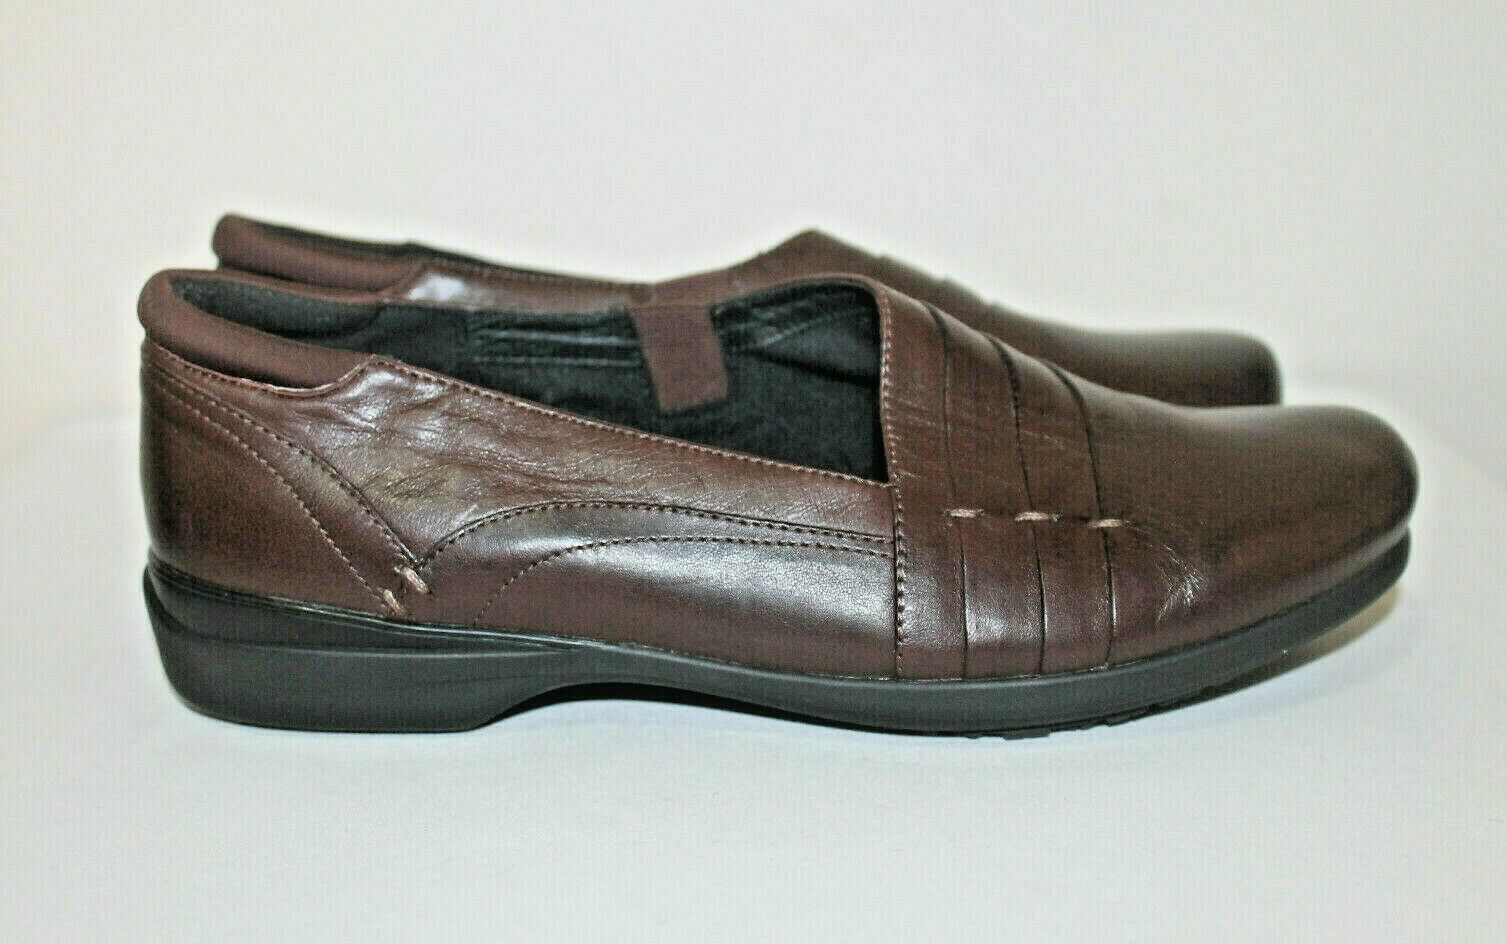 Abeo 24/7 Brown Leather Adele Women's Slip On Loafers Shoes Size 9~ No Insoles